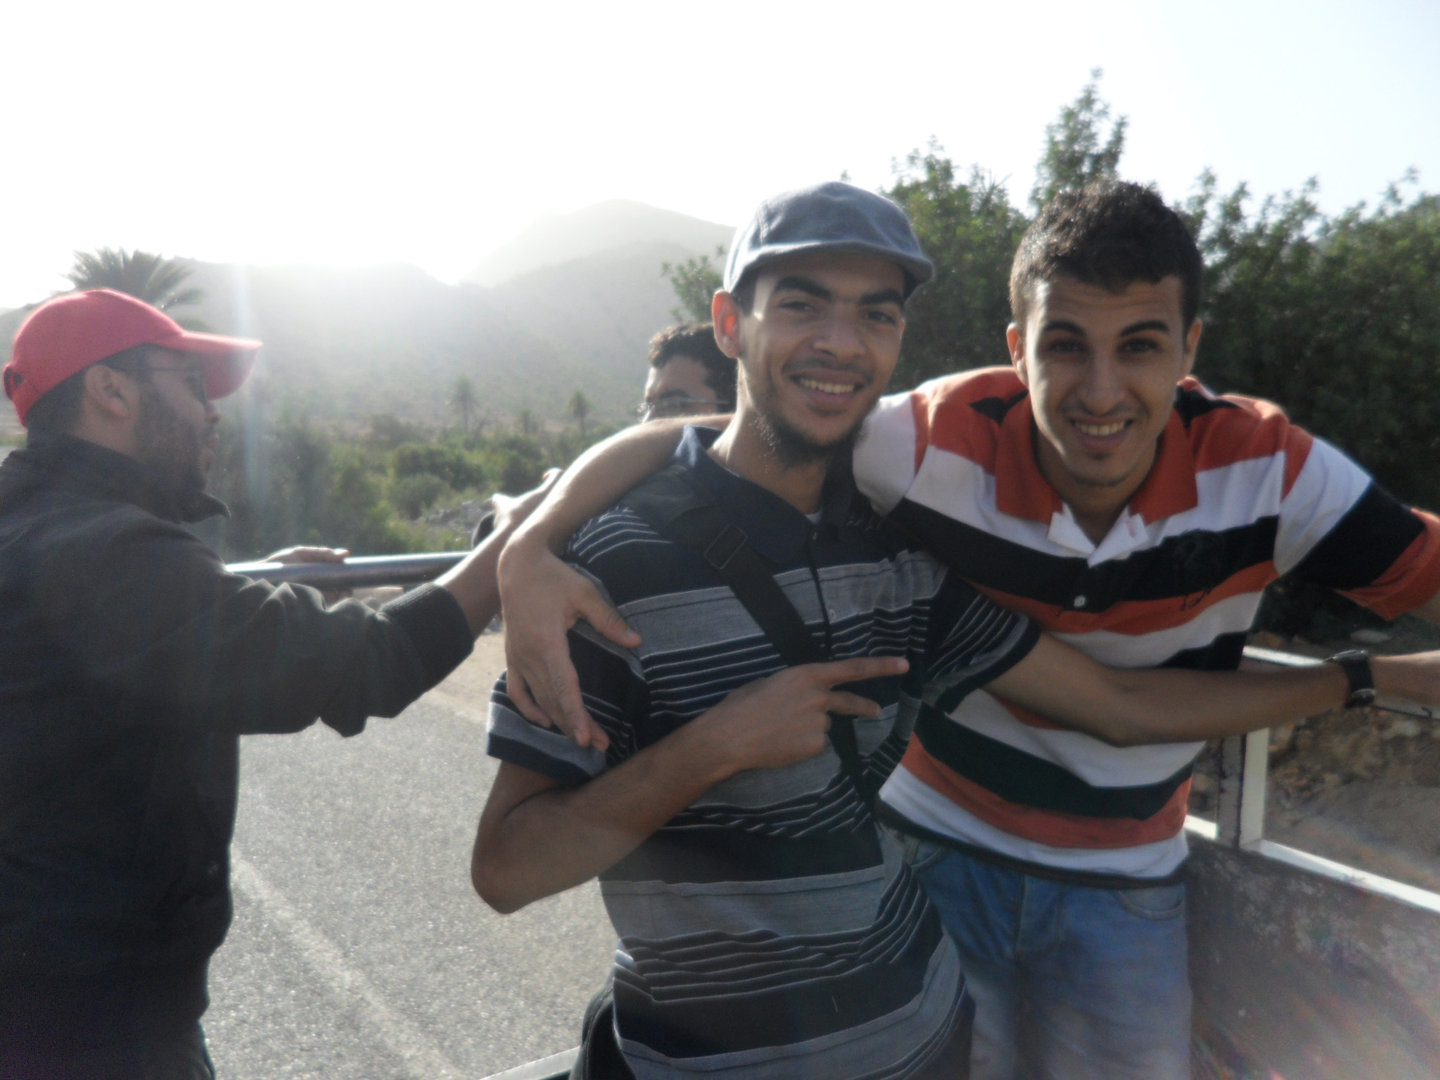 sam_3495-jpg.41798_On Hitchhiking in Morocco_Hitchhiking_Squat the Planet_{posttime}